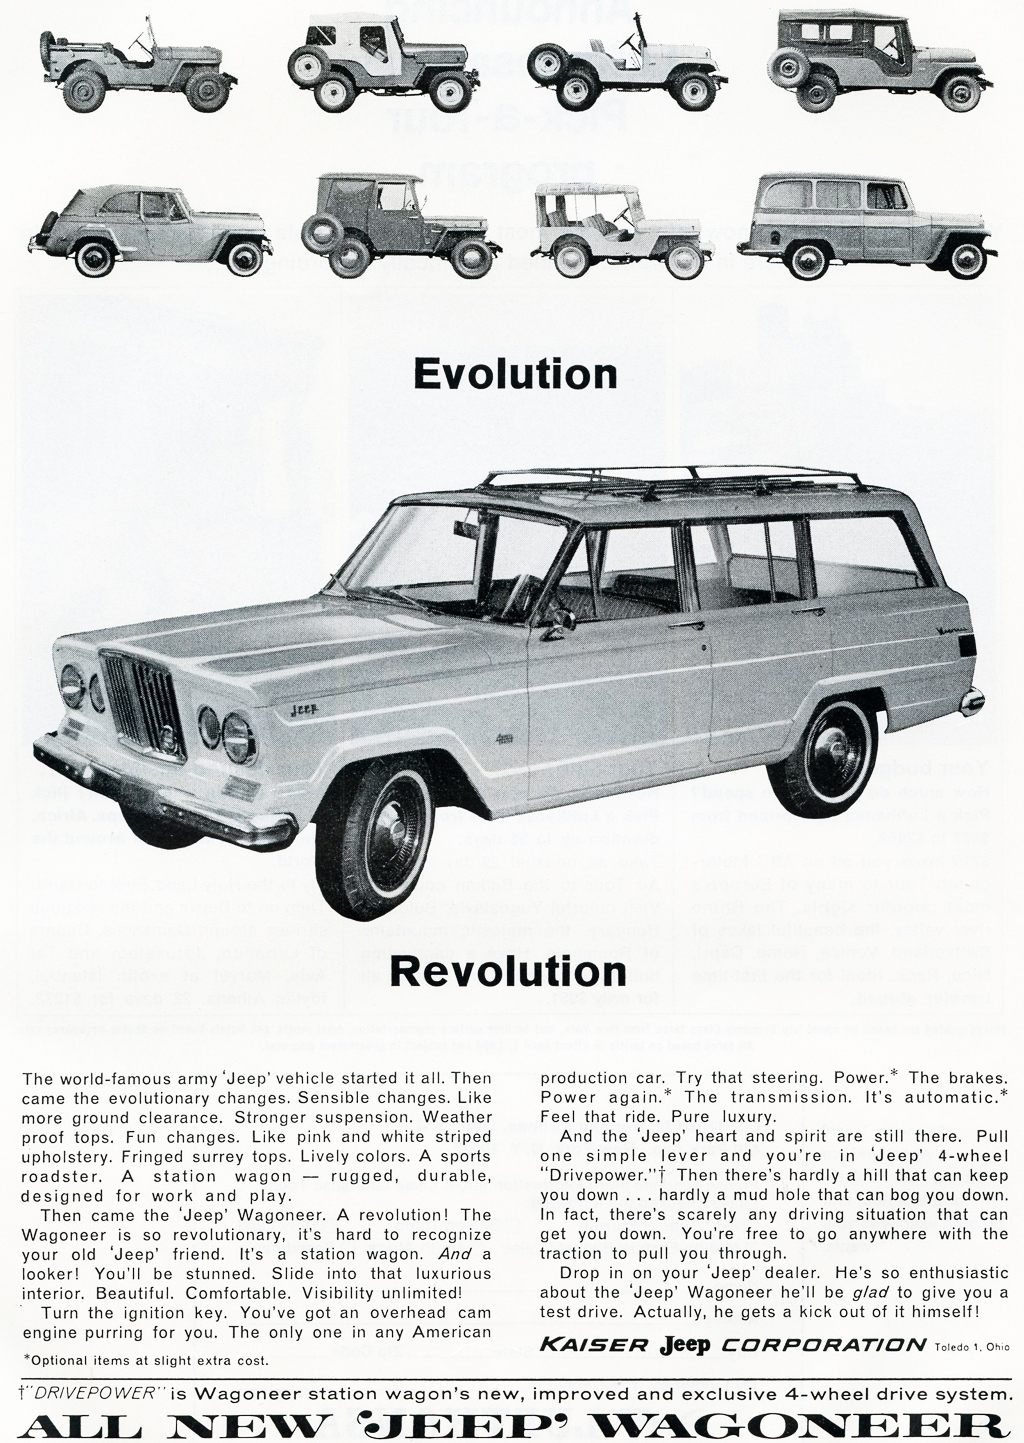 1963 Jeep Wagoneer advertisement